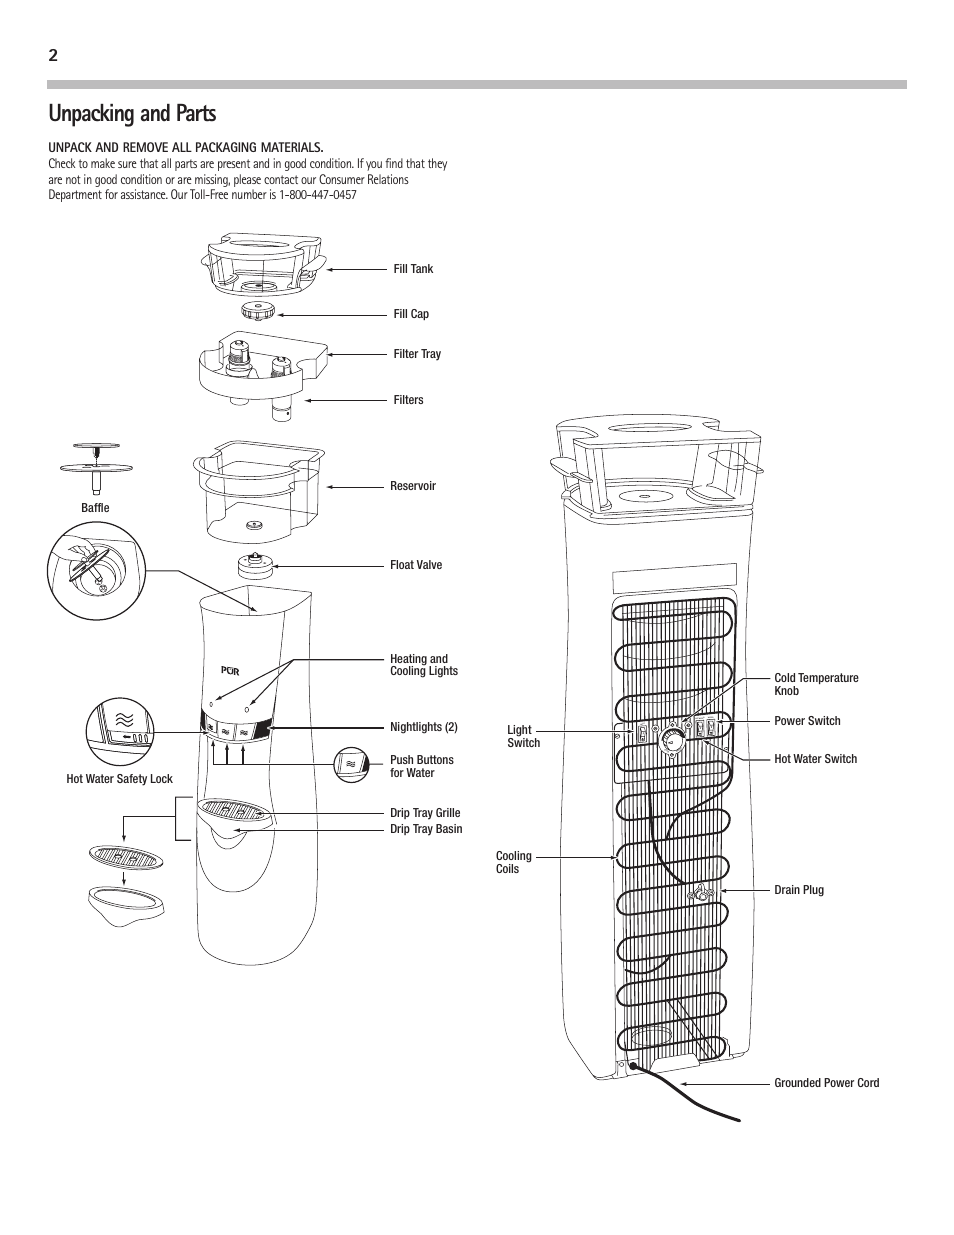 medium resolution of unpacking and parts pur water purification products water cooler pur300 user manual page 4 28